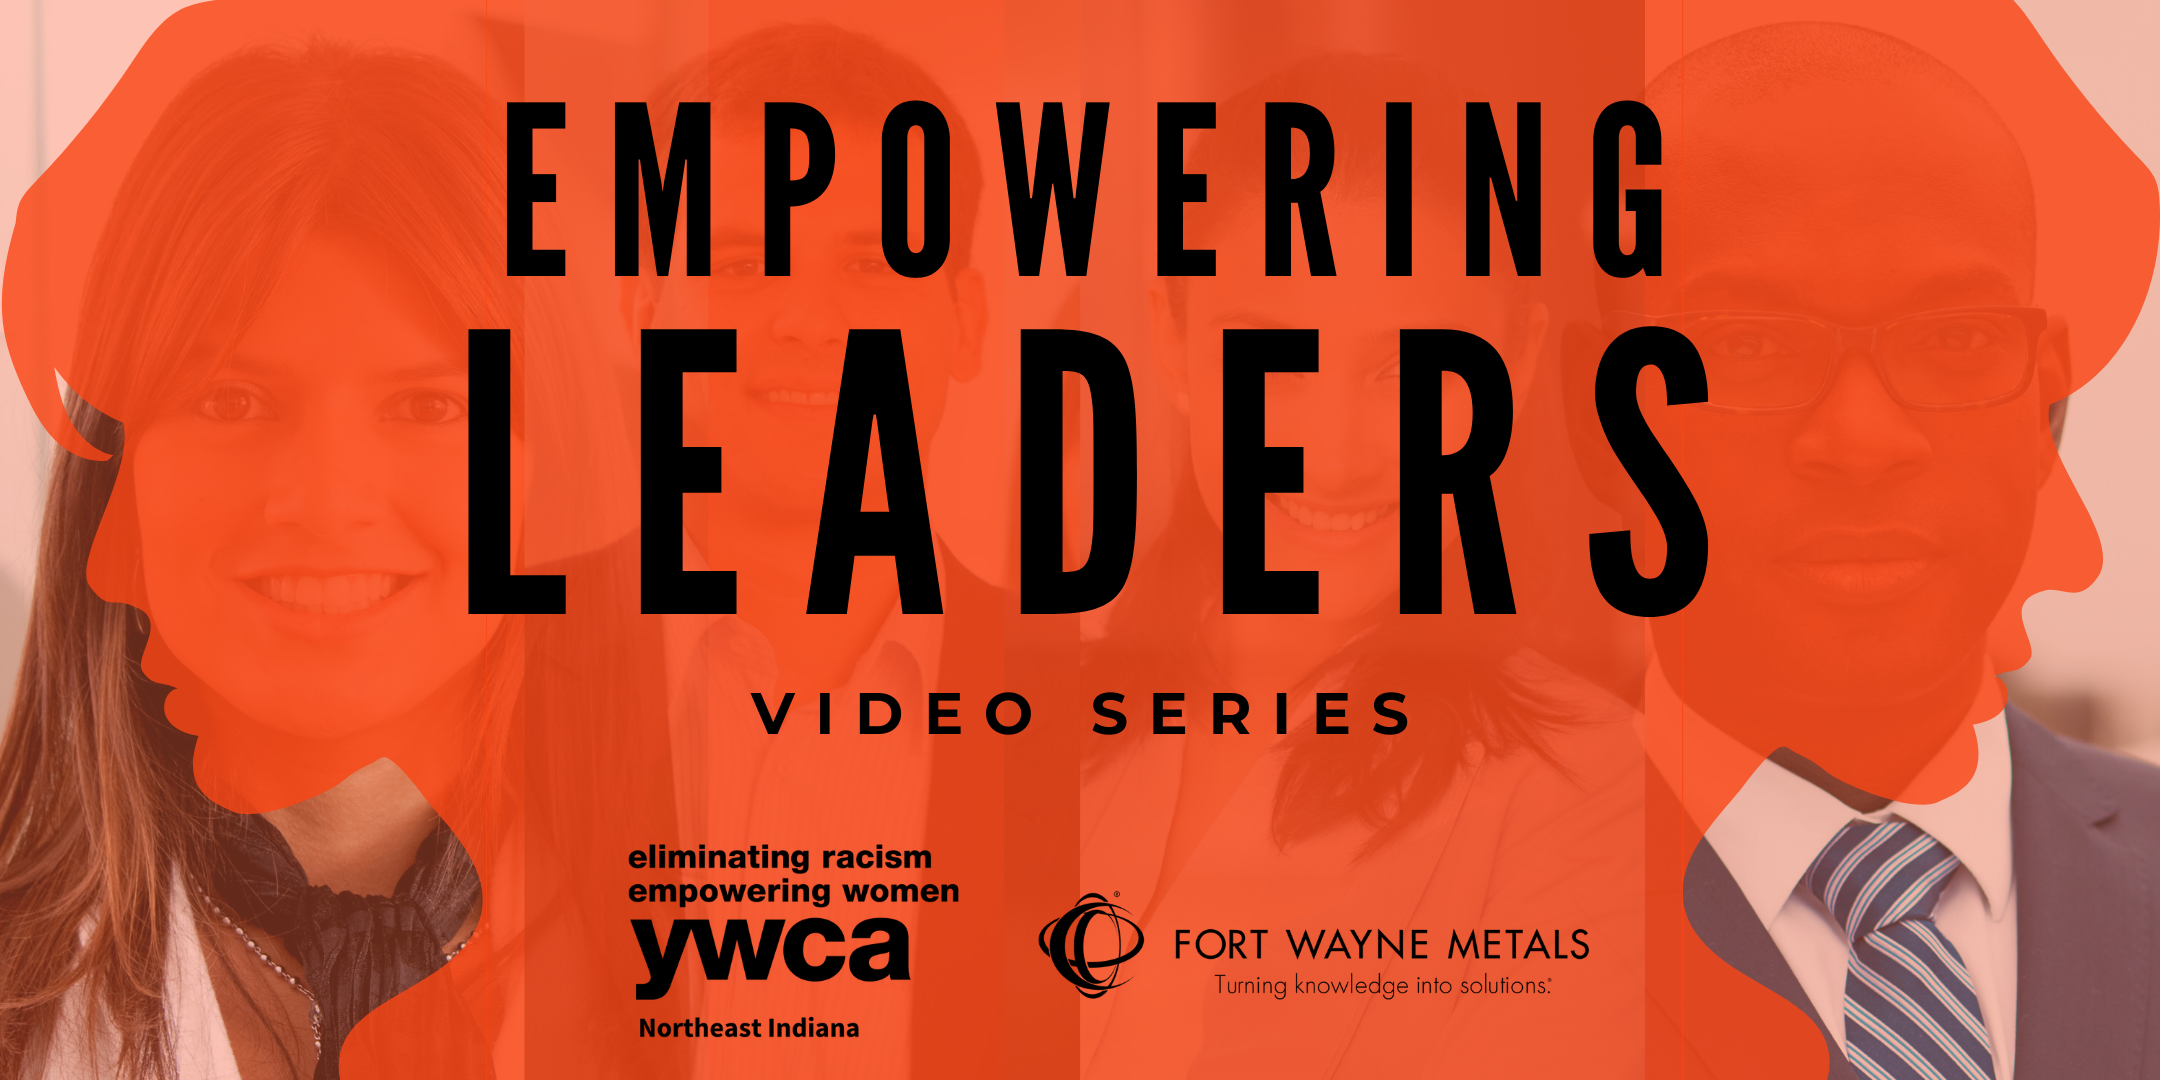 empoweringleadersvideoserieslogo.png?Revision=ysf&Timestamp=pH438L